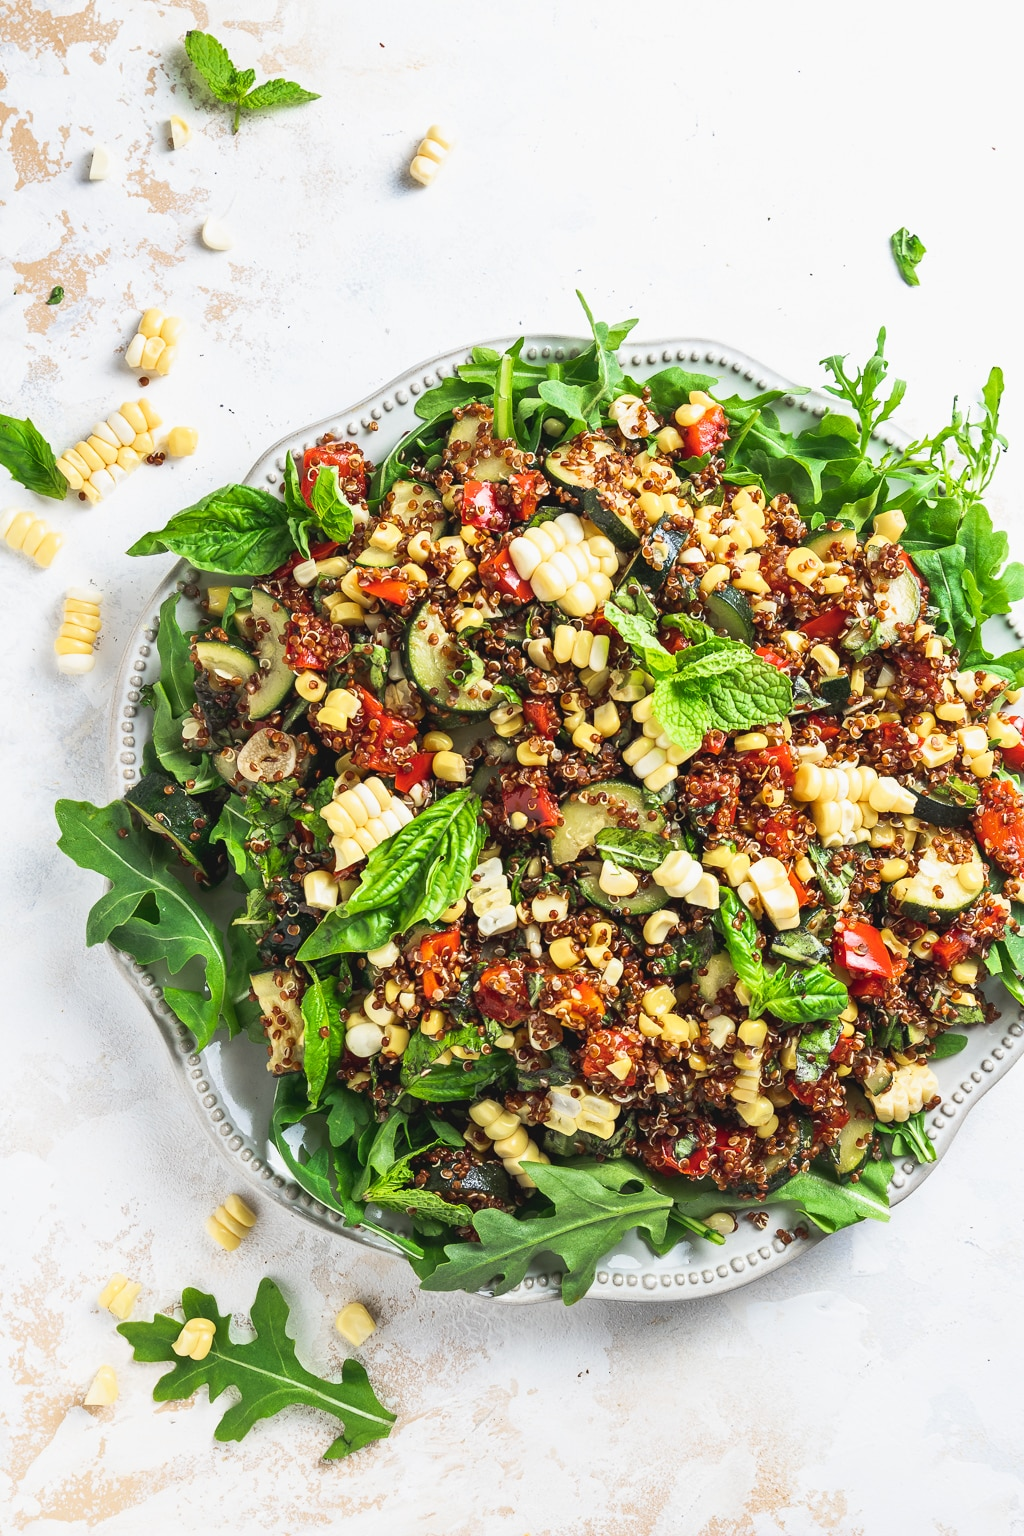 zucchini corn quinoa salad on a plate with arugula and herbs